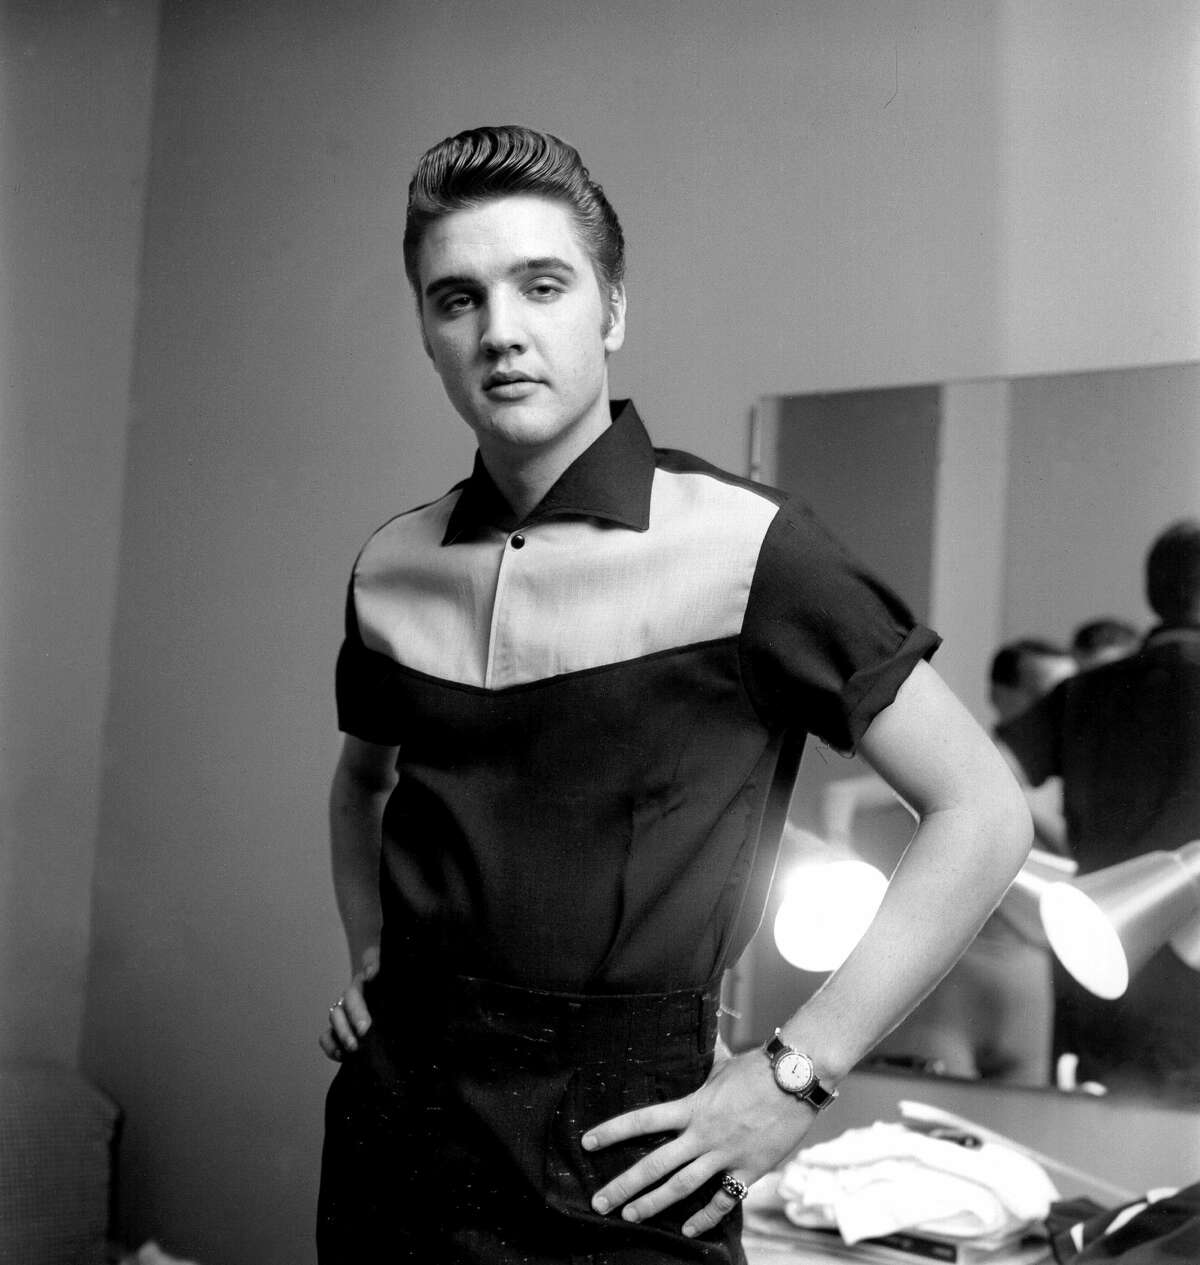 Rock and roll musician Elvis Presley backstage at the Milton Berle Show in Burbank, California on June 4, 1956.